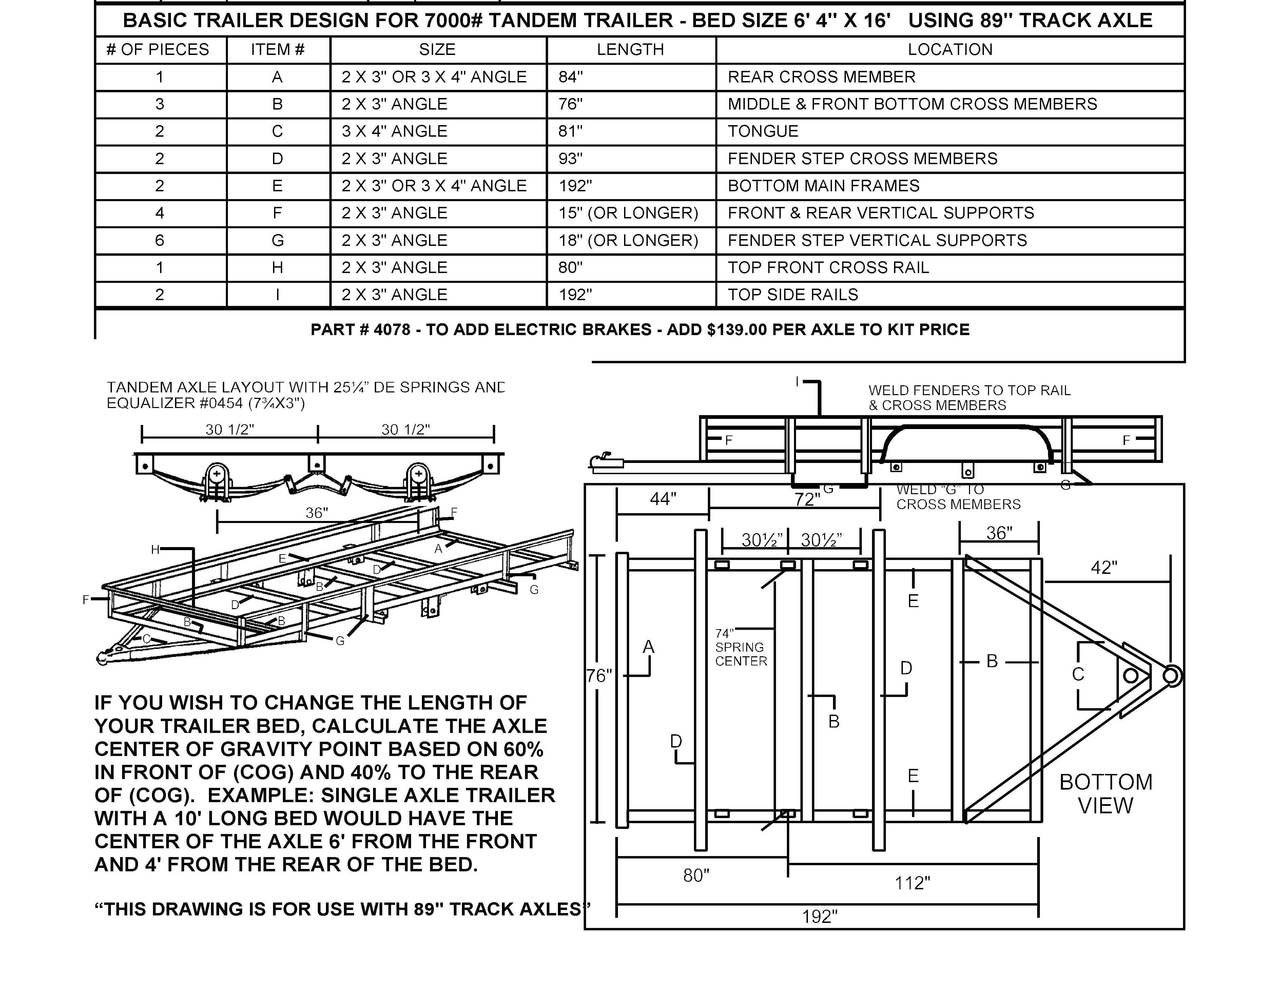 73 Tandem Trailer Parts Kit Build Your Own Tandem Trailer With Champion Trailers Utility Kit